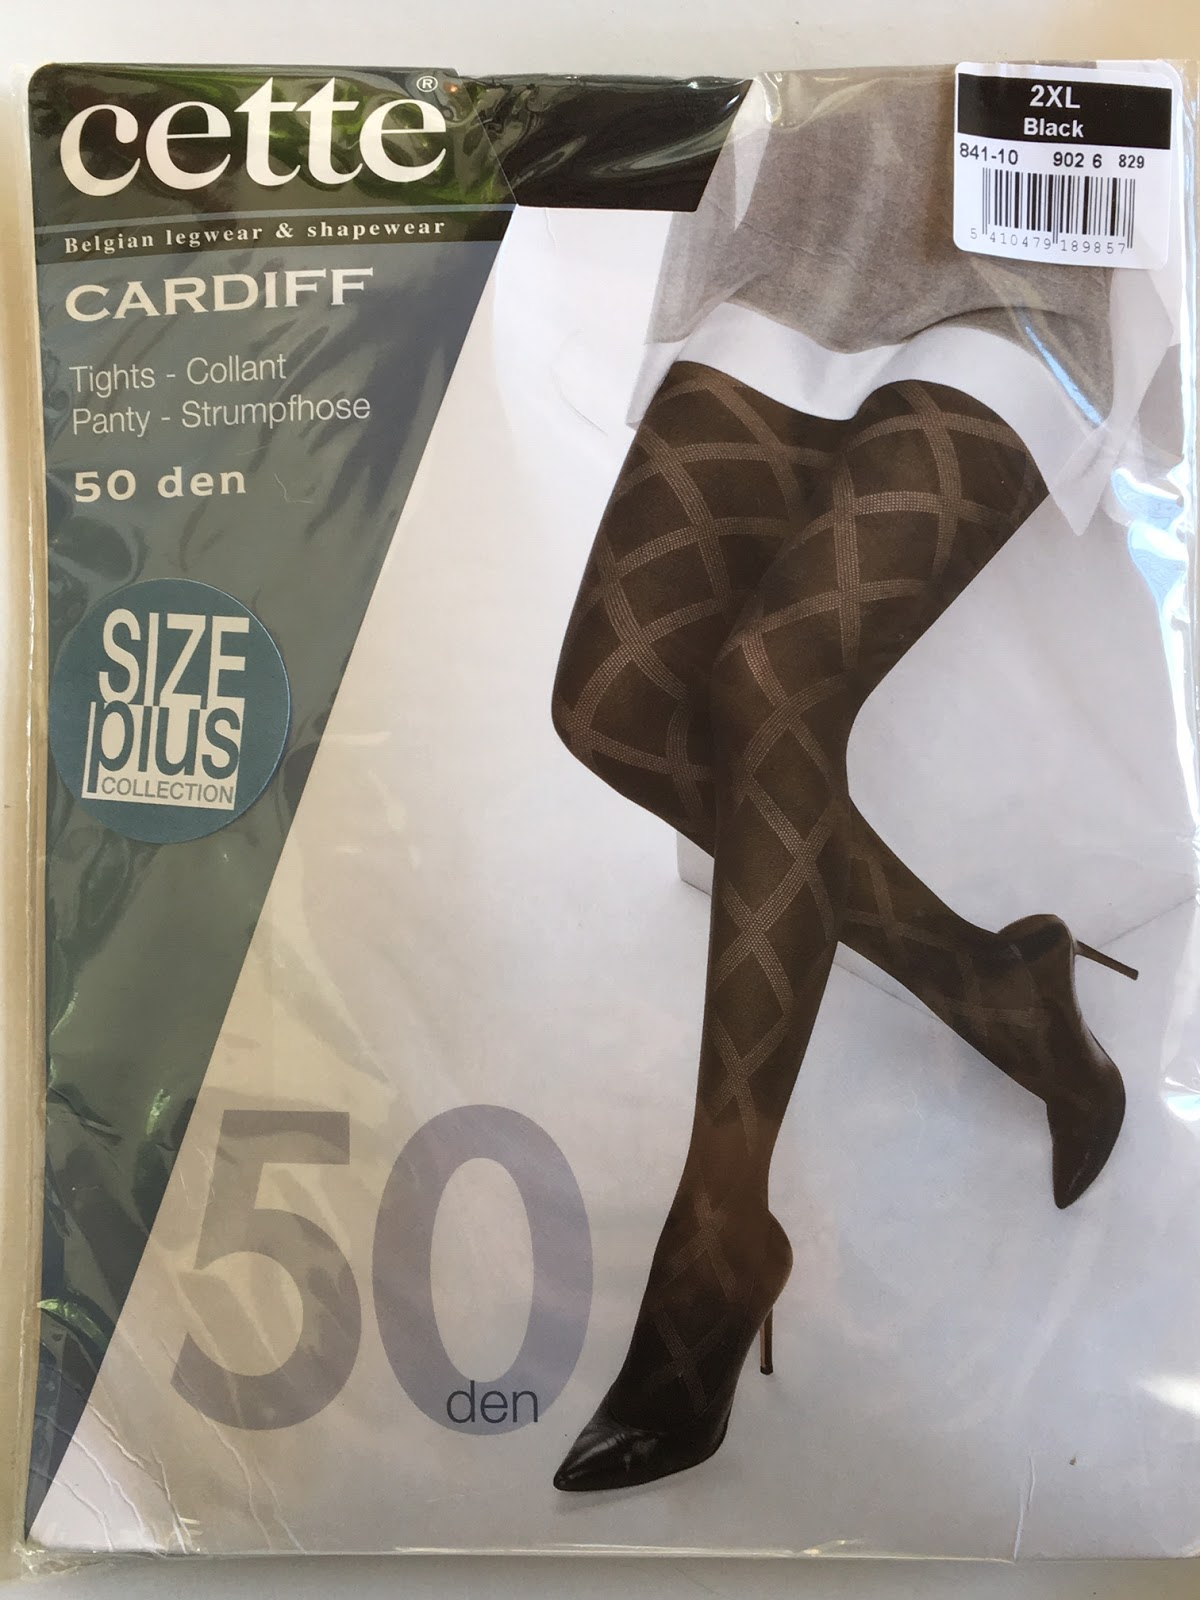 162e9d82ff4 Hosiery For Men  Reviewed  Cette 50 Denier Cardiff Size Plus Tights